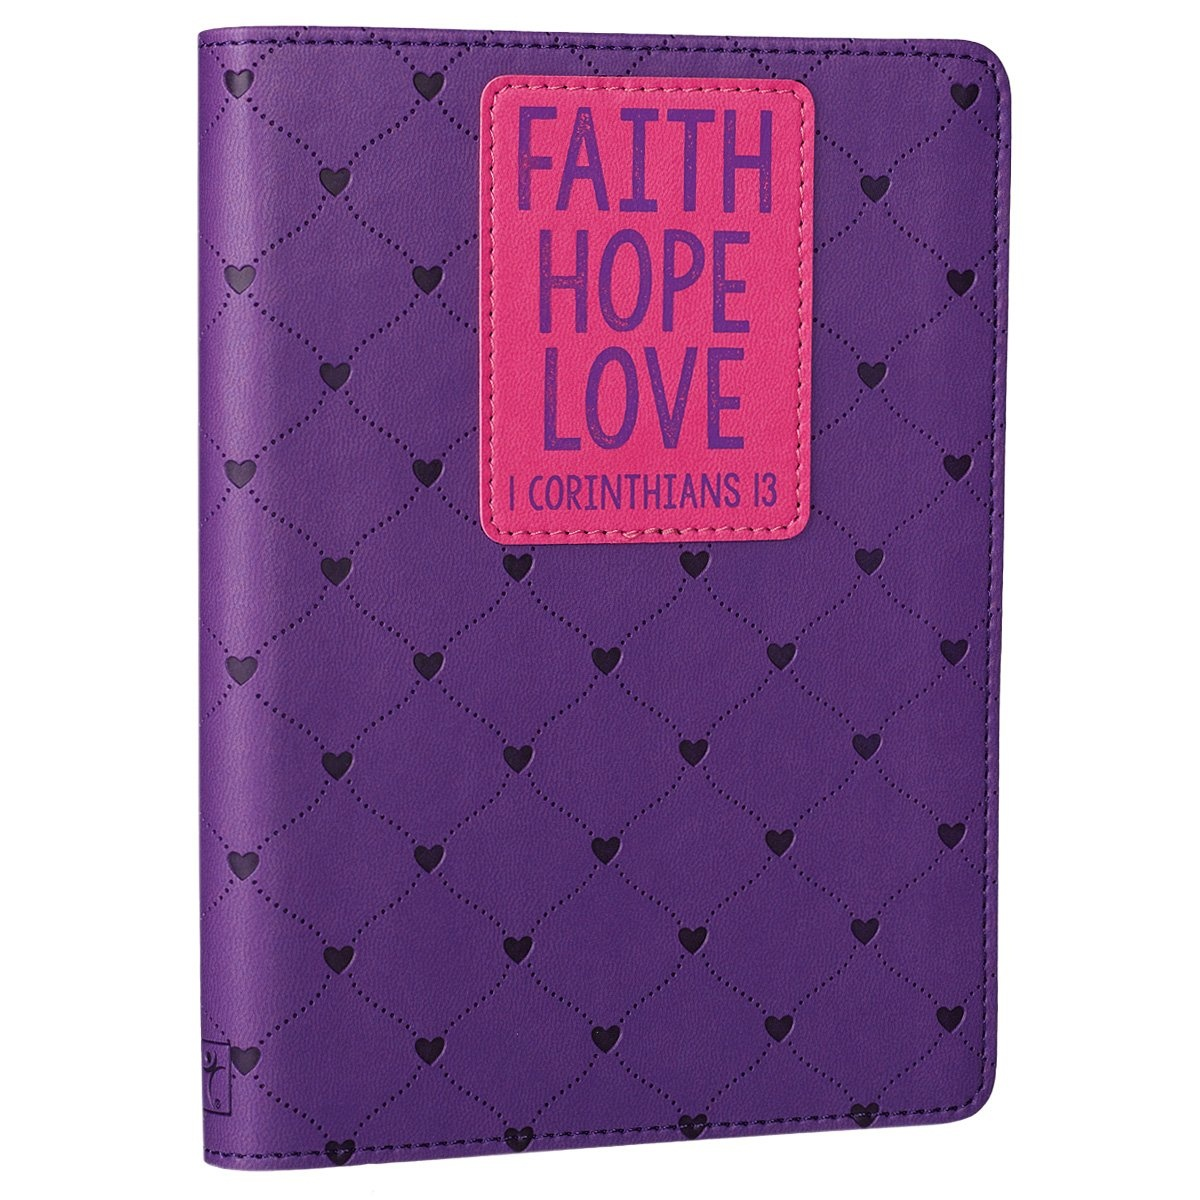 Faith Hope Love - Purple